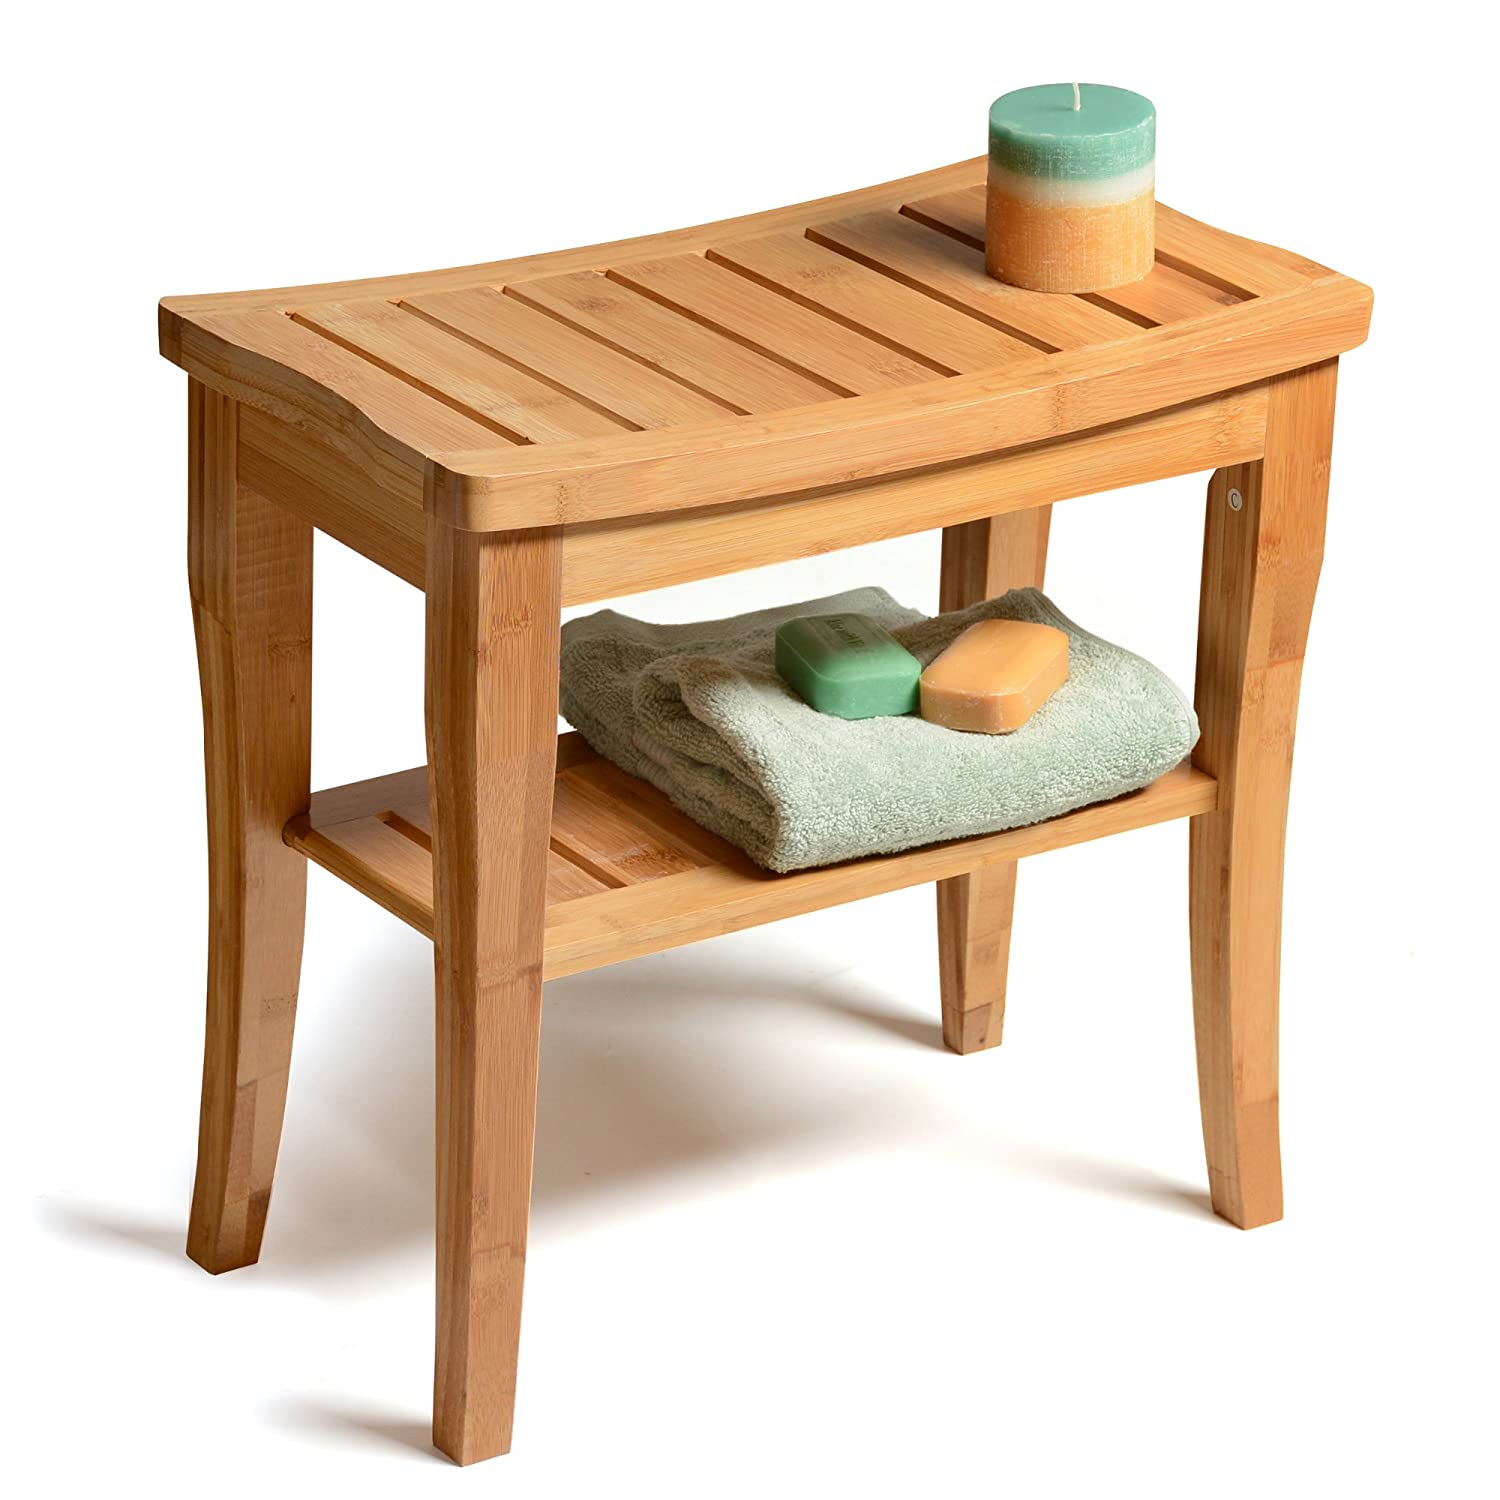 Sensational Bambusi Shower Bench Stool With Shelf Bamboo Spa Bathroom Decor Wood Seat Bench For Indoor Or Outdoor Use Ncnpc Chair Design For Home Ncnpcorg